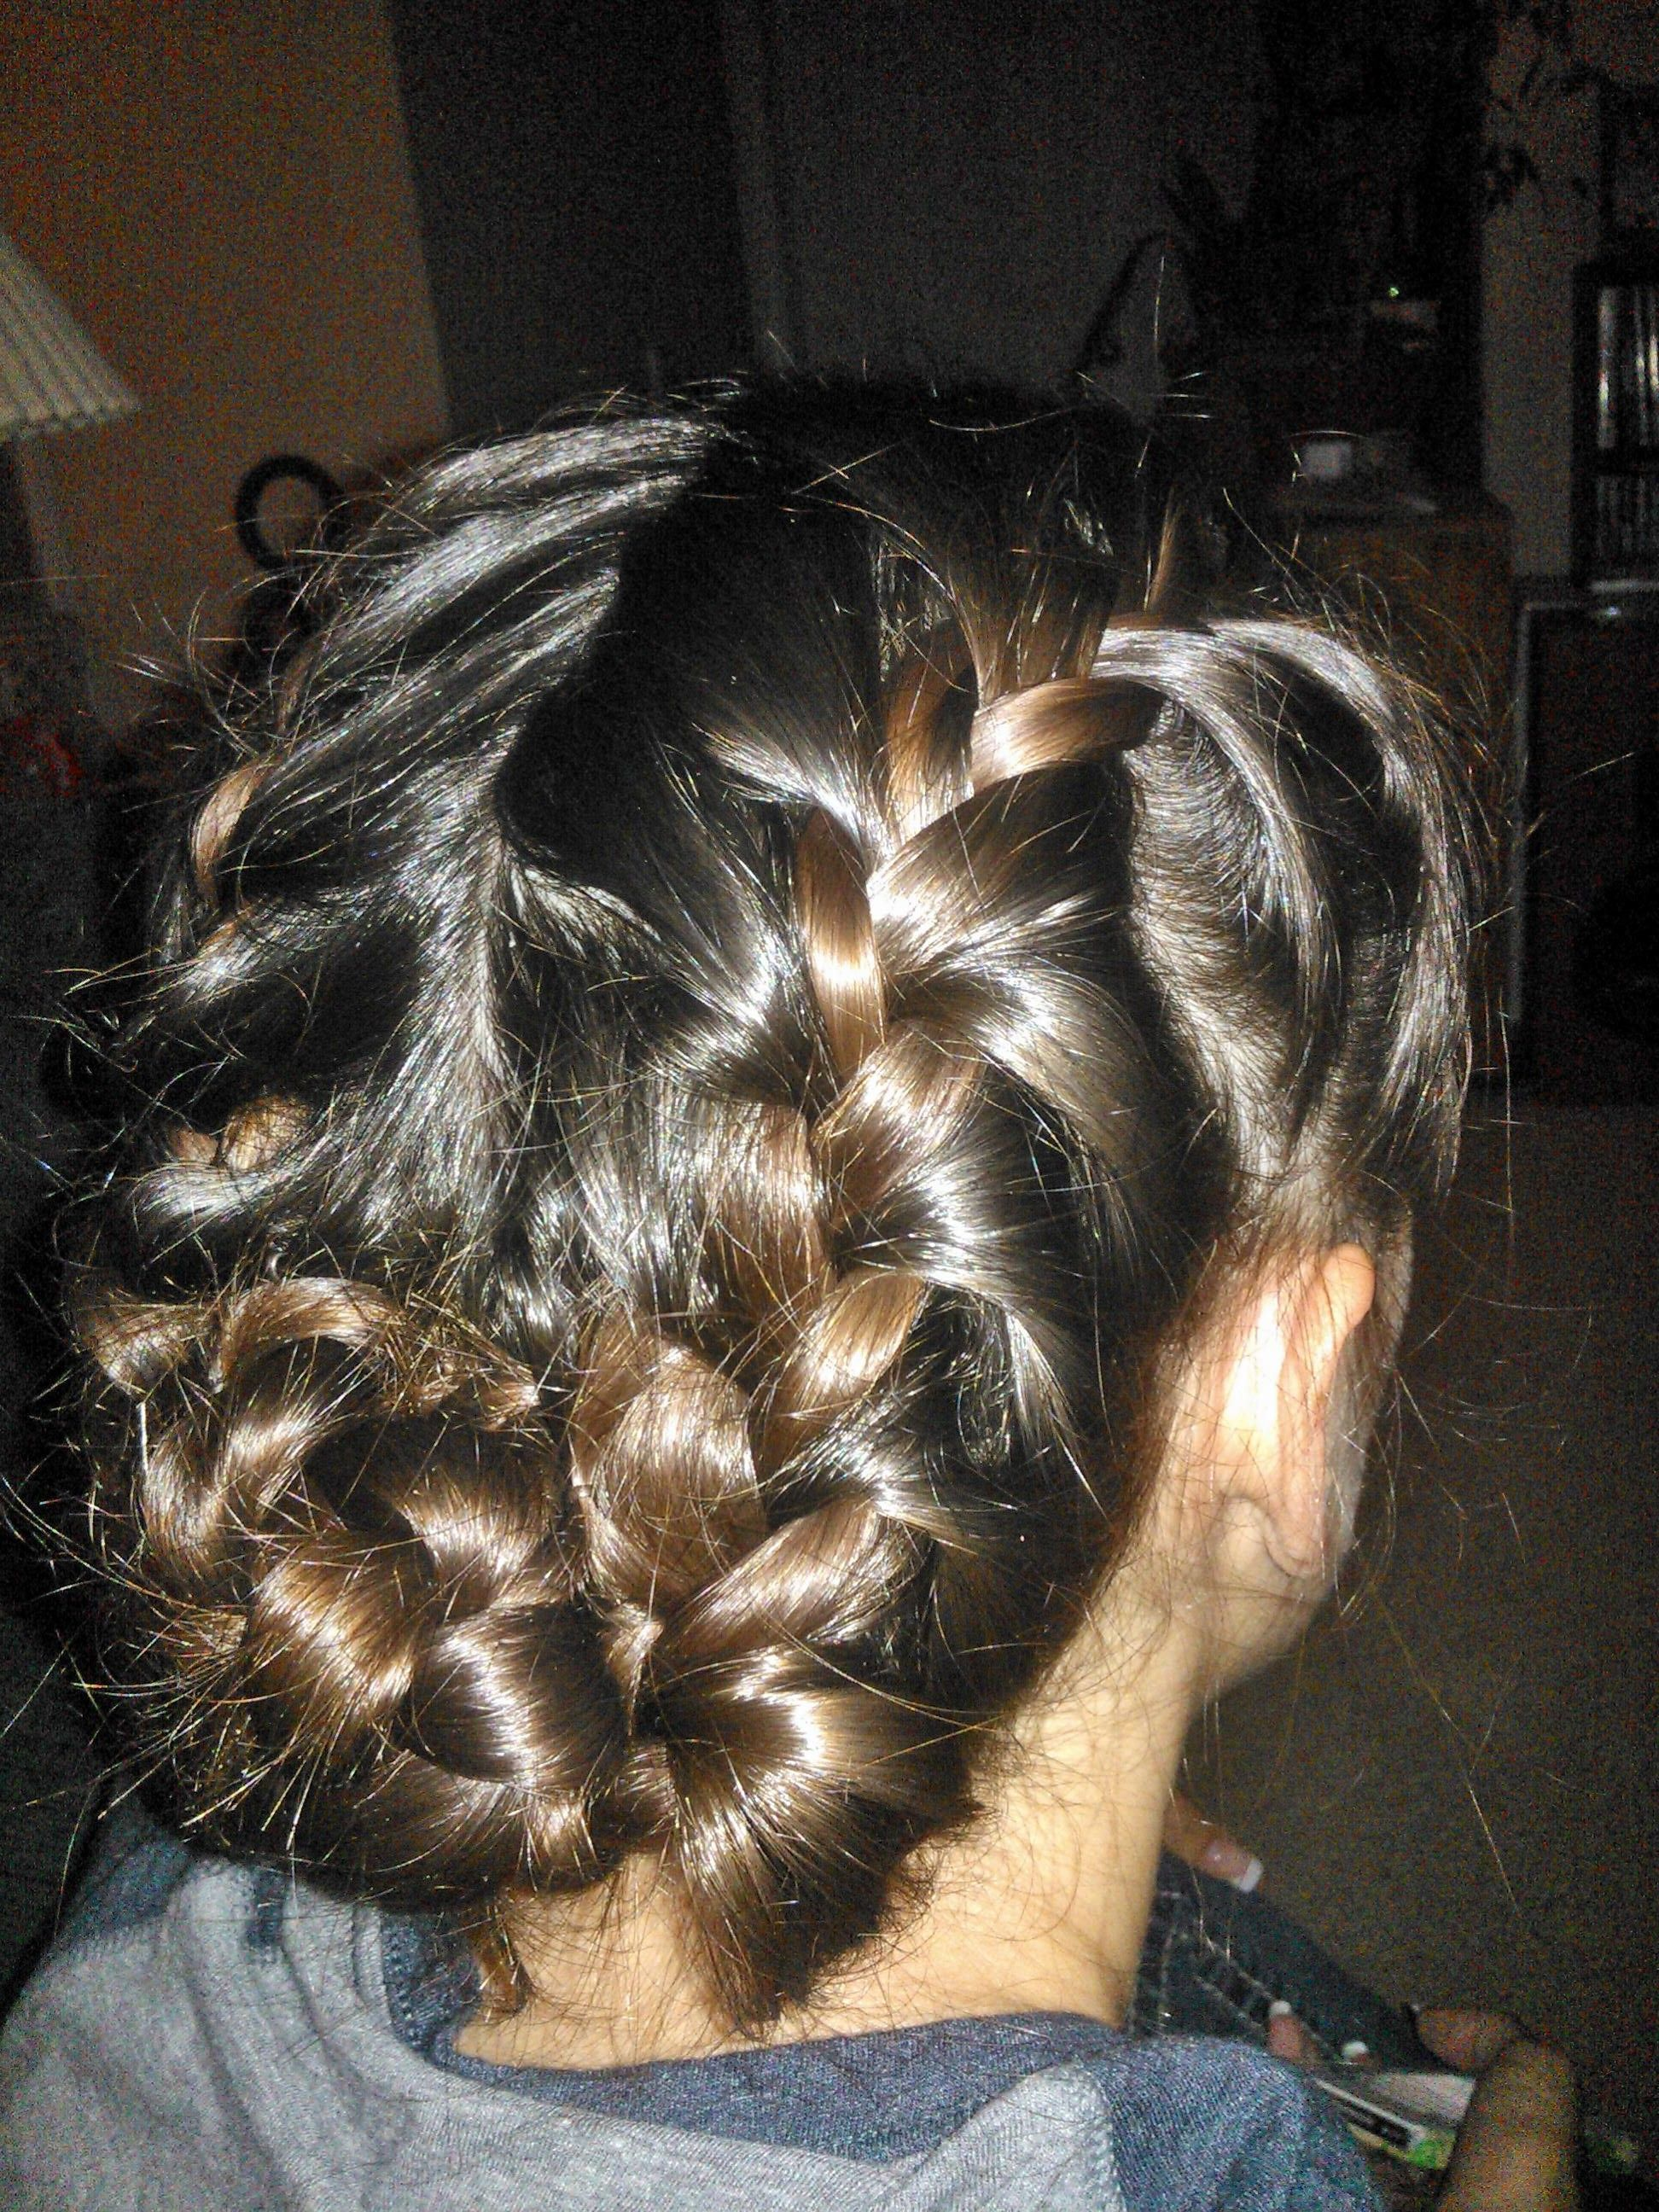 Two French Braids Ending In A Braided Bun Either With Both Or